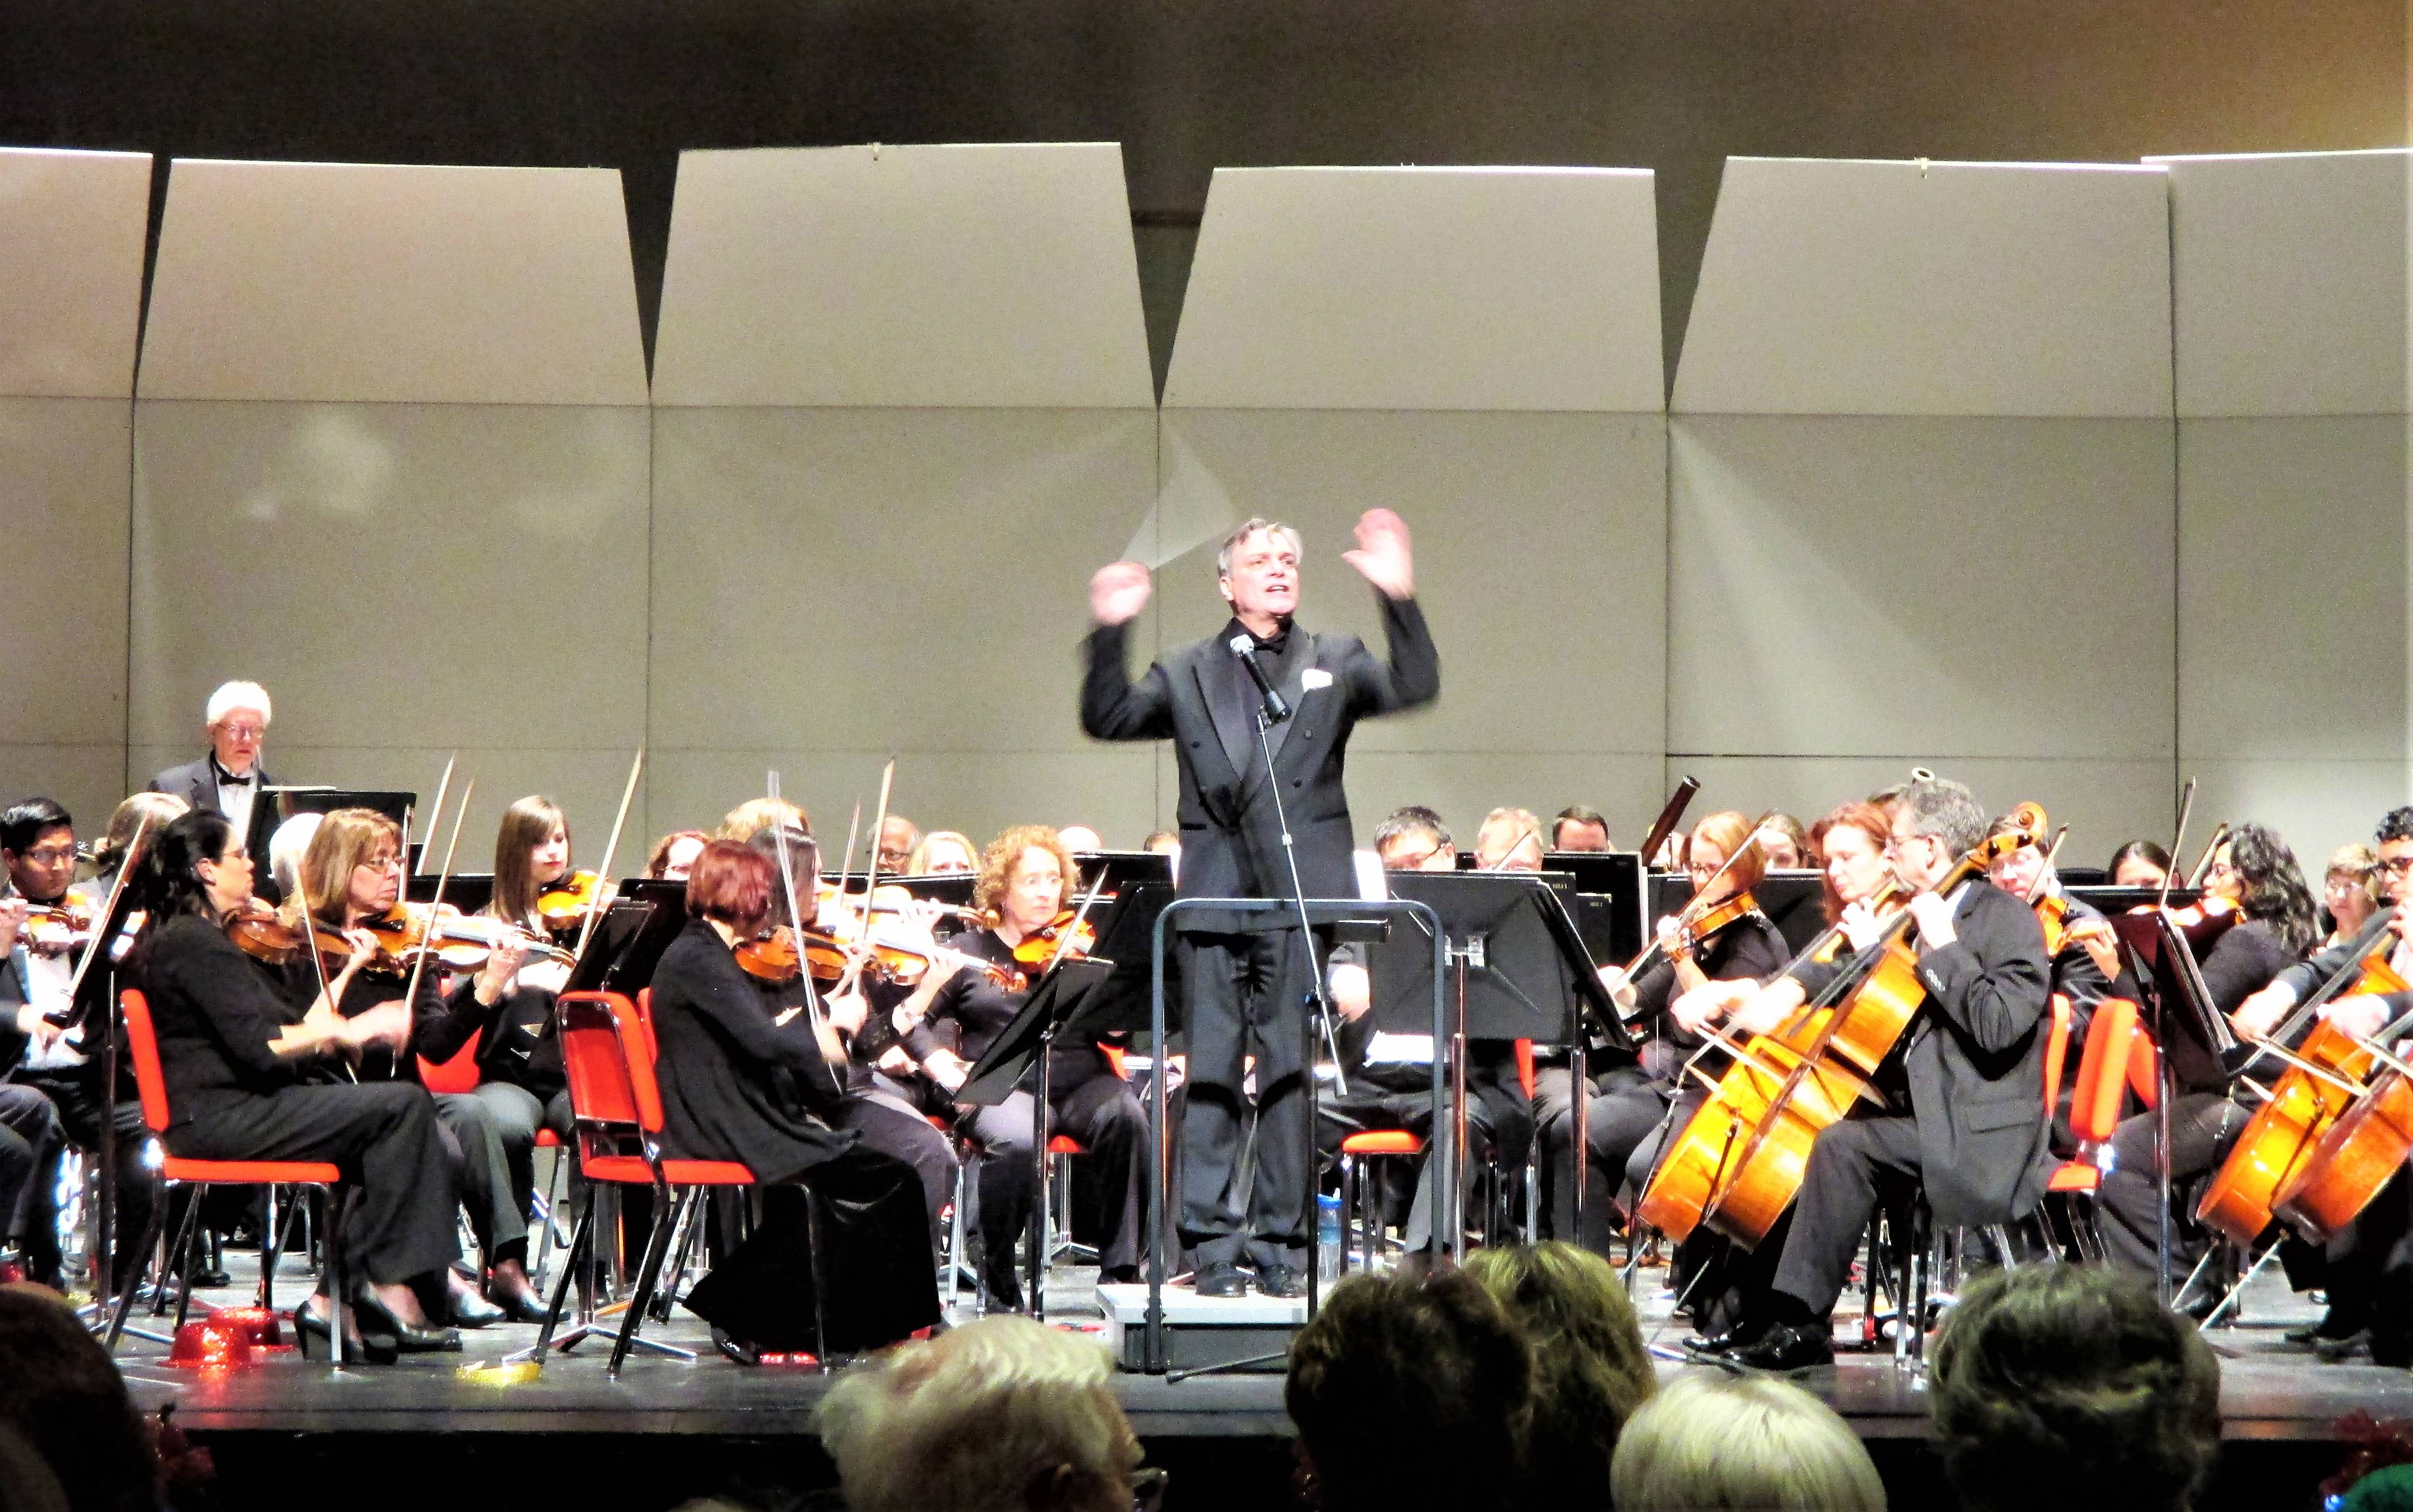 West Suburban Symphony Orchestra and Singers lit up Hinsdale with a beautiful holiday concert program on Sunday, December 10.Natalia Dagenhart